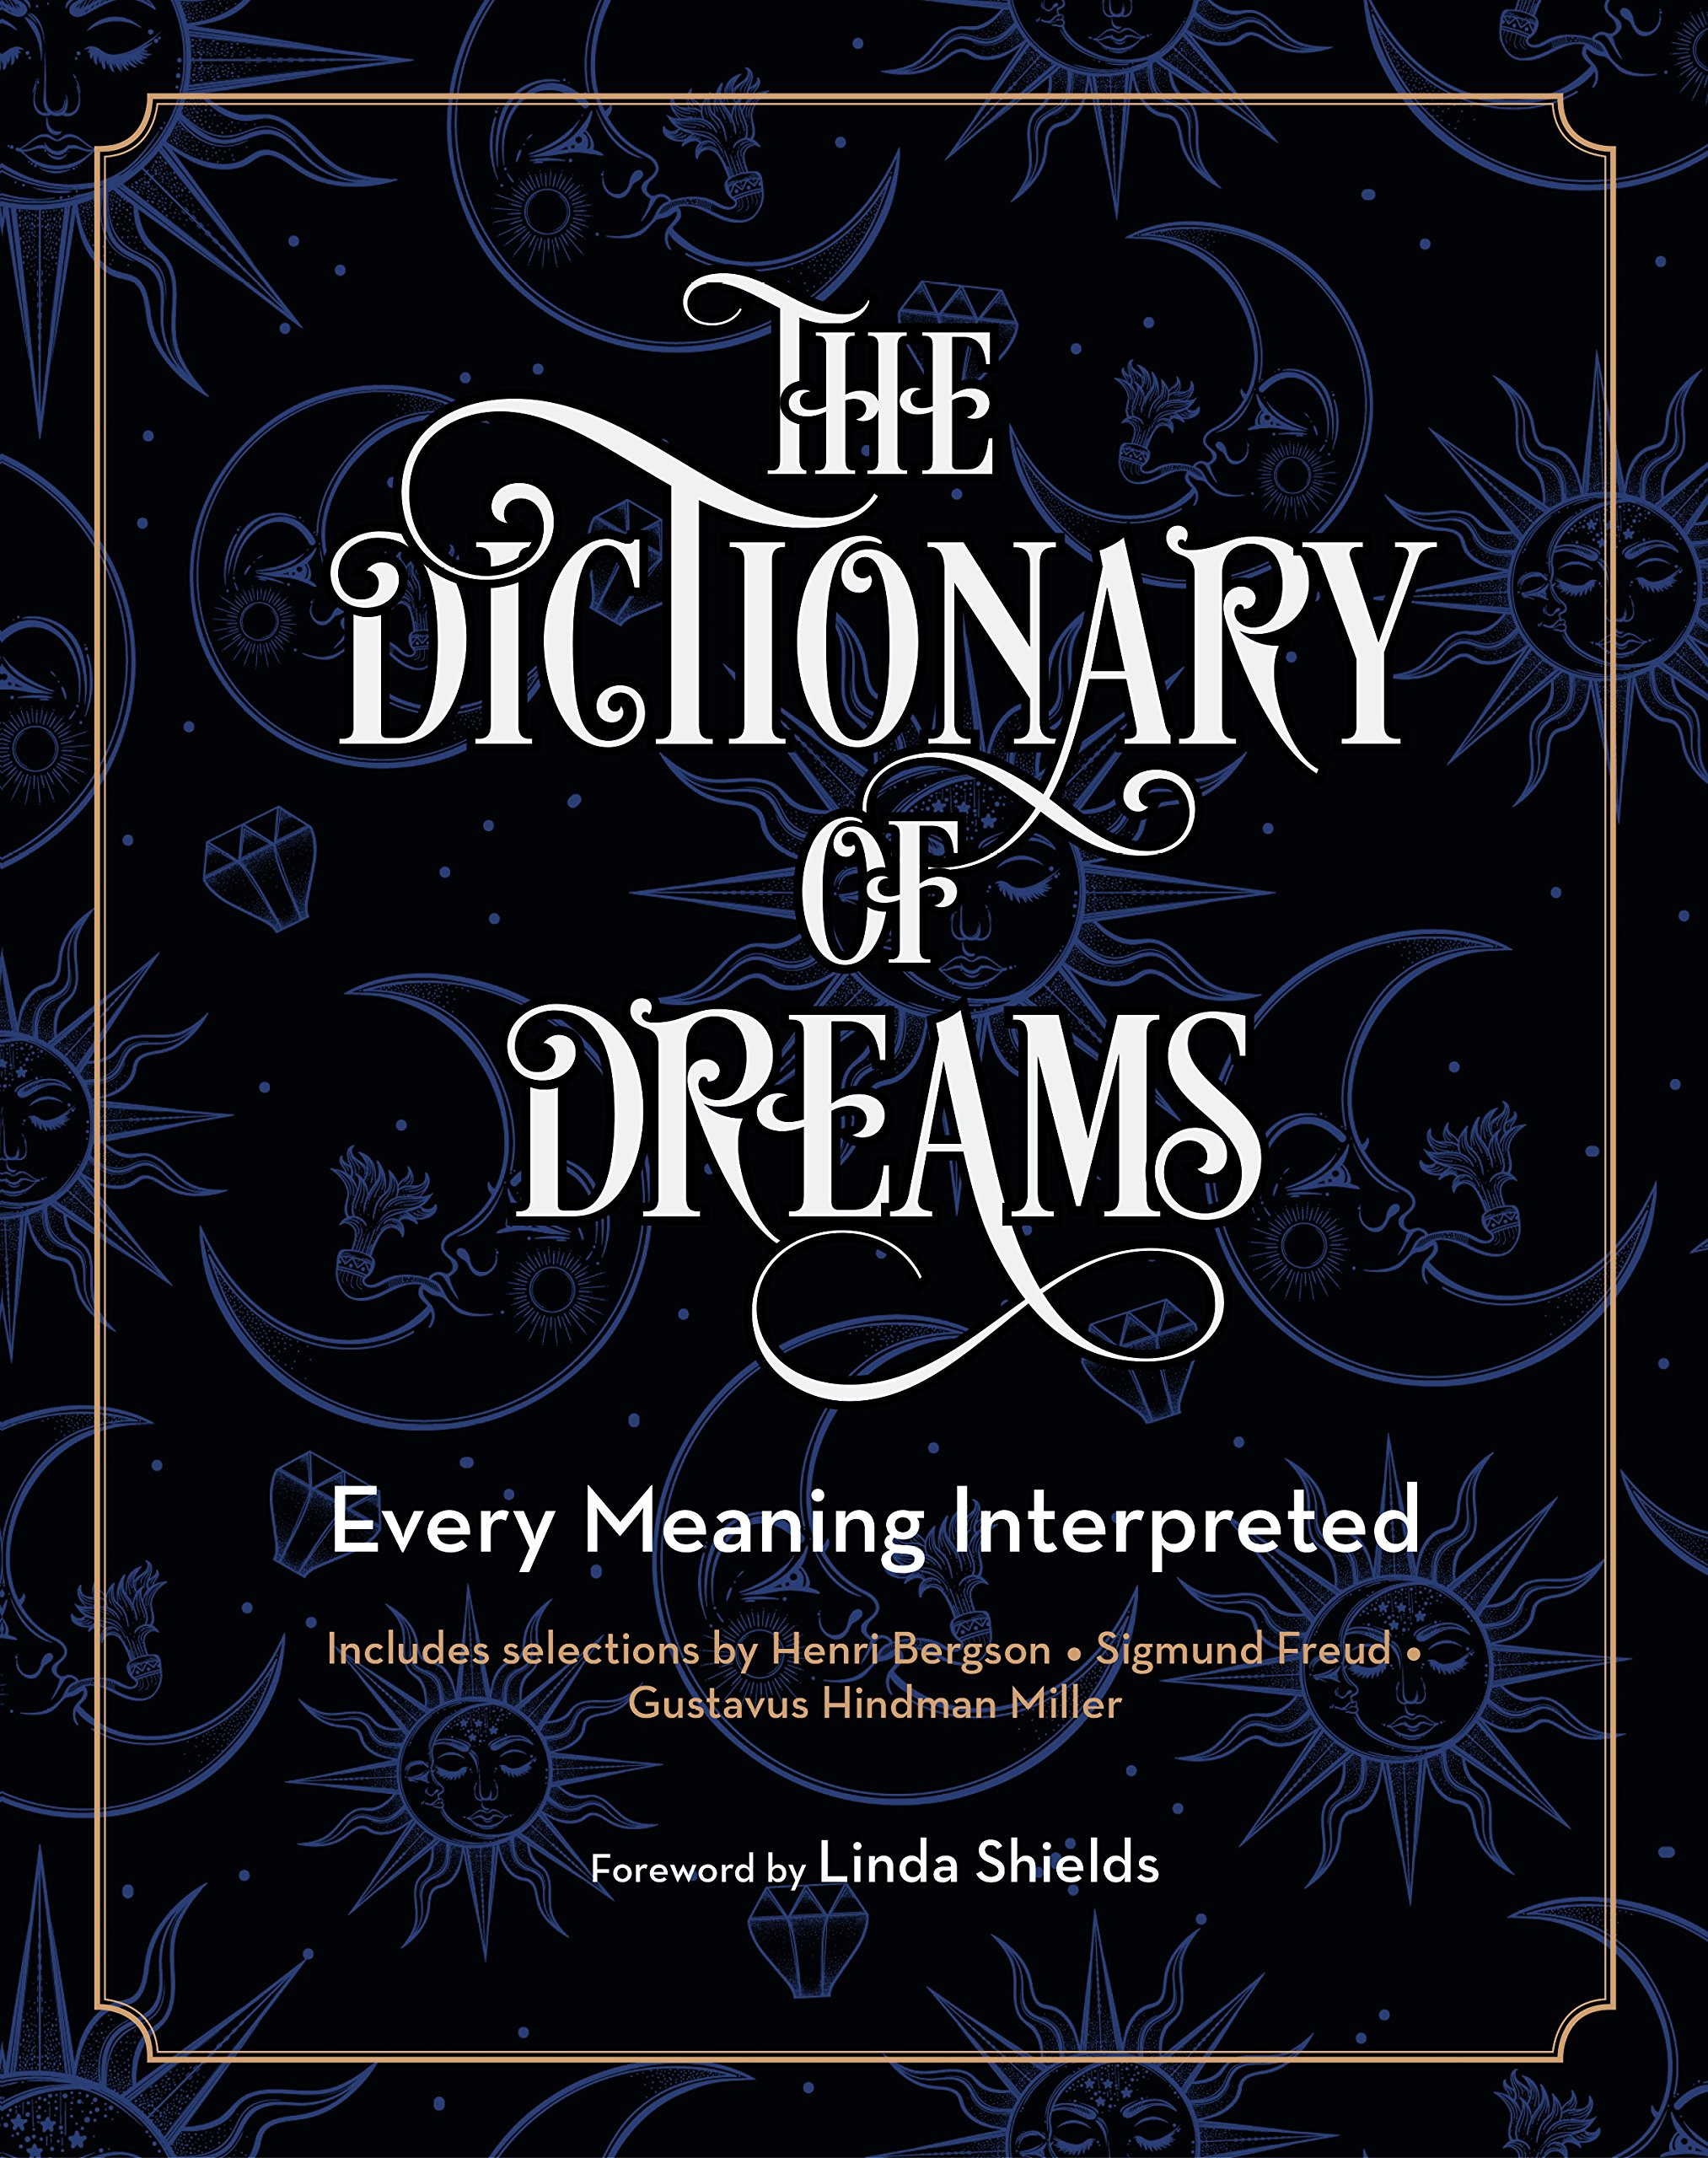 The Dictionary of Dreams: Every Meaning Interpreted: Amazon.co.uk: Gustavus  Hindman Miller, Sigmund Freud, Henri Bergson, Linda Shields: 9781577151562:  ...